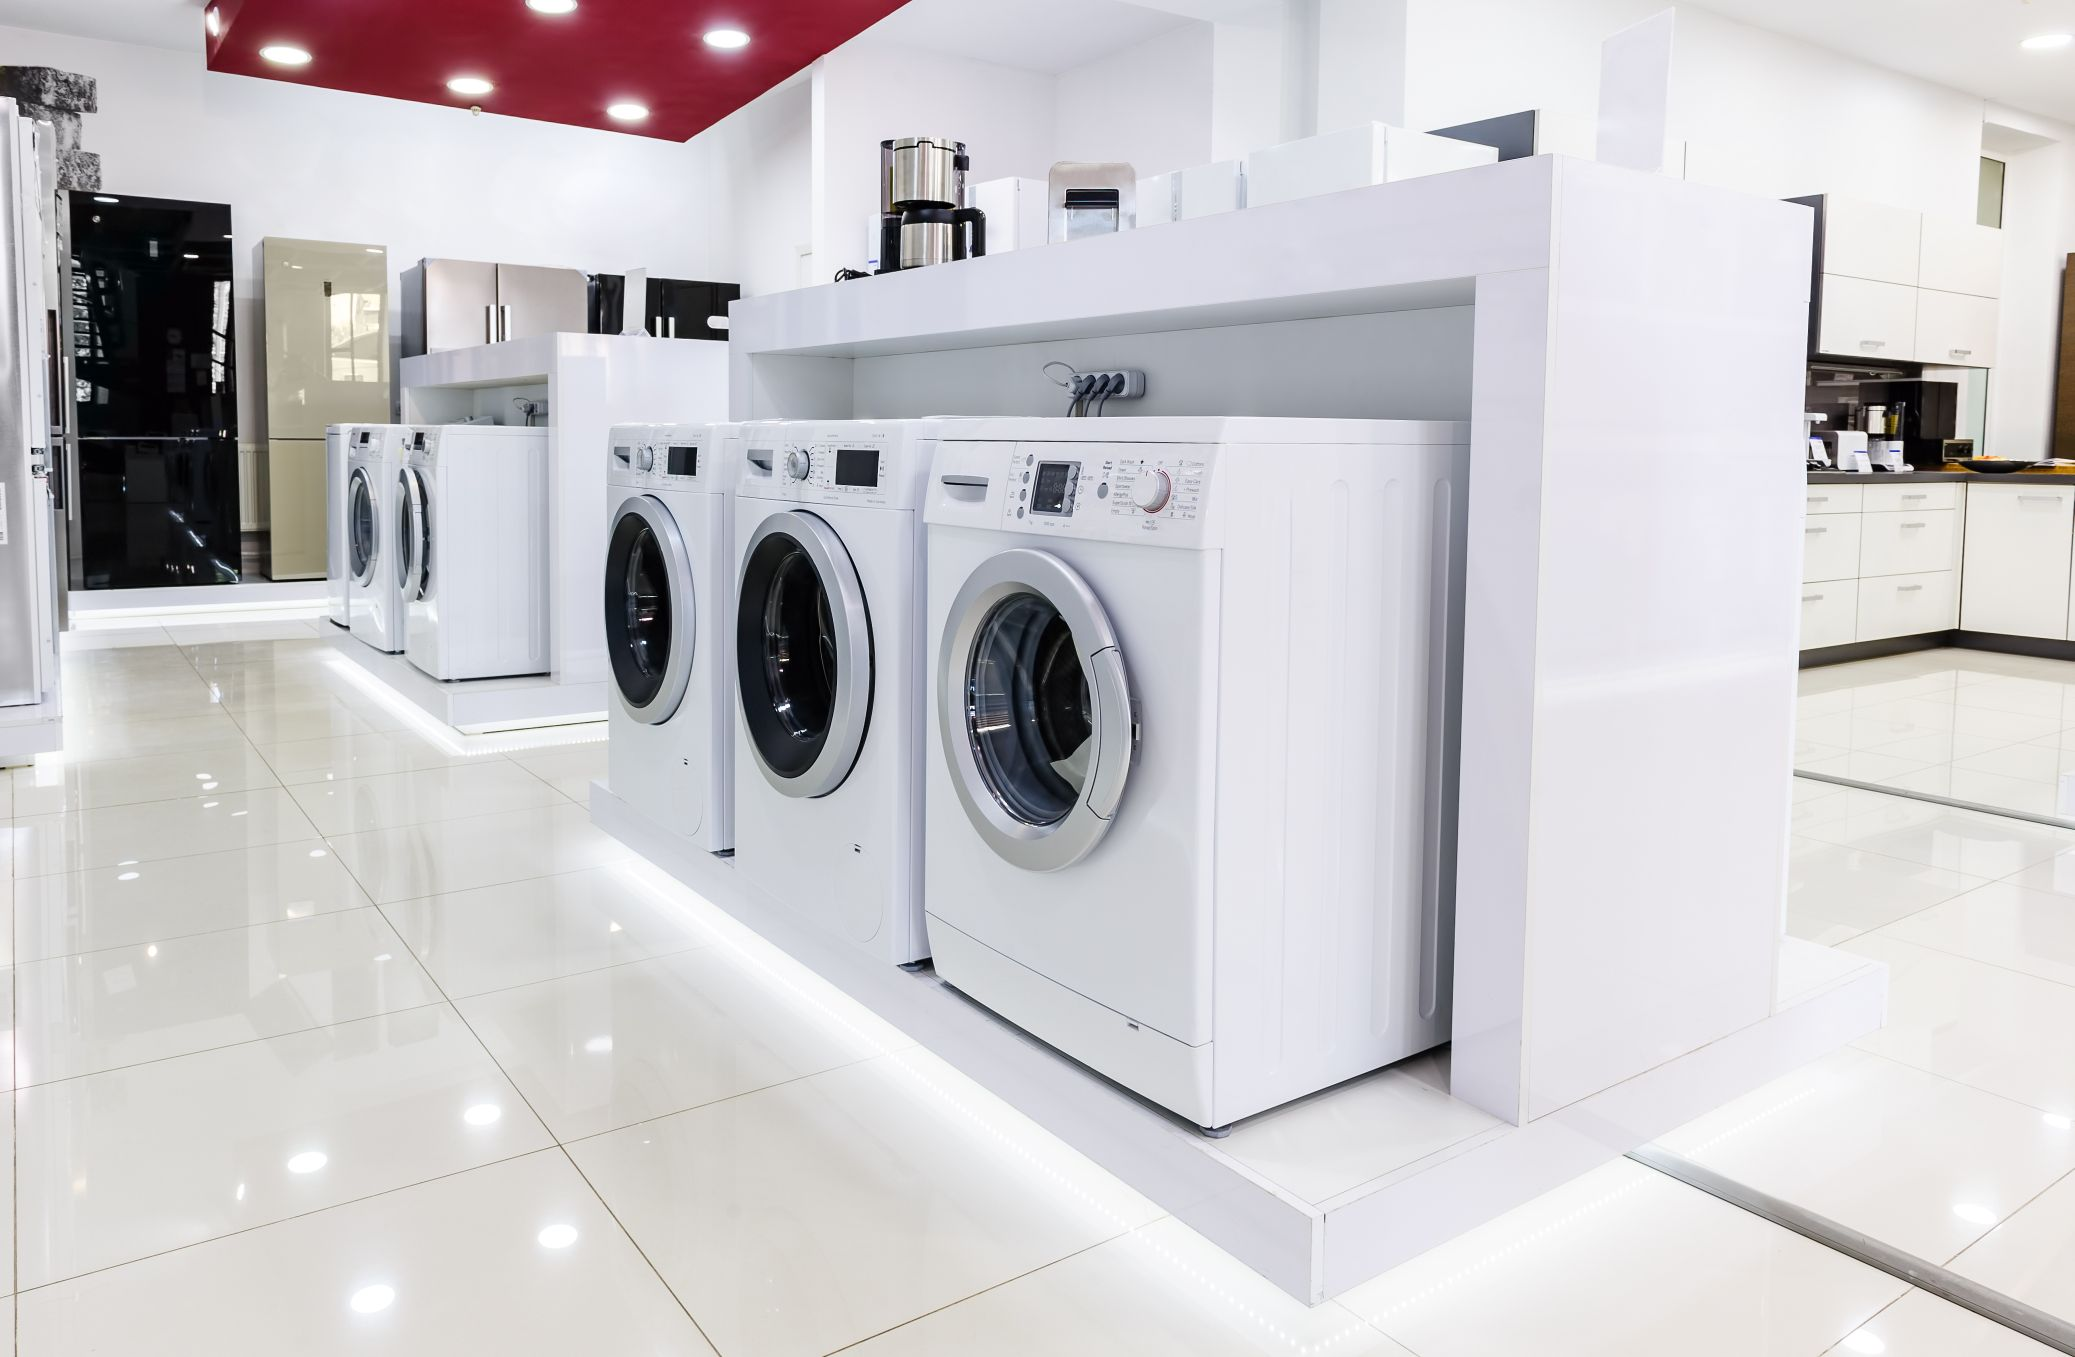 washing-machines-dryers-dealers